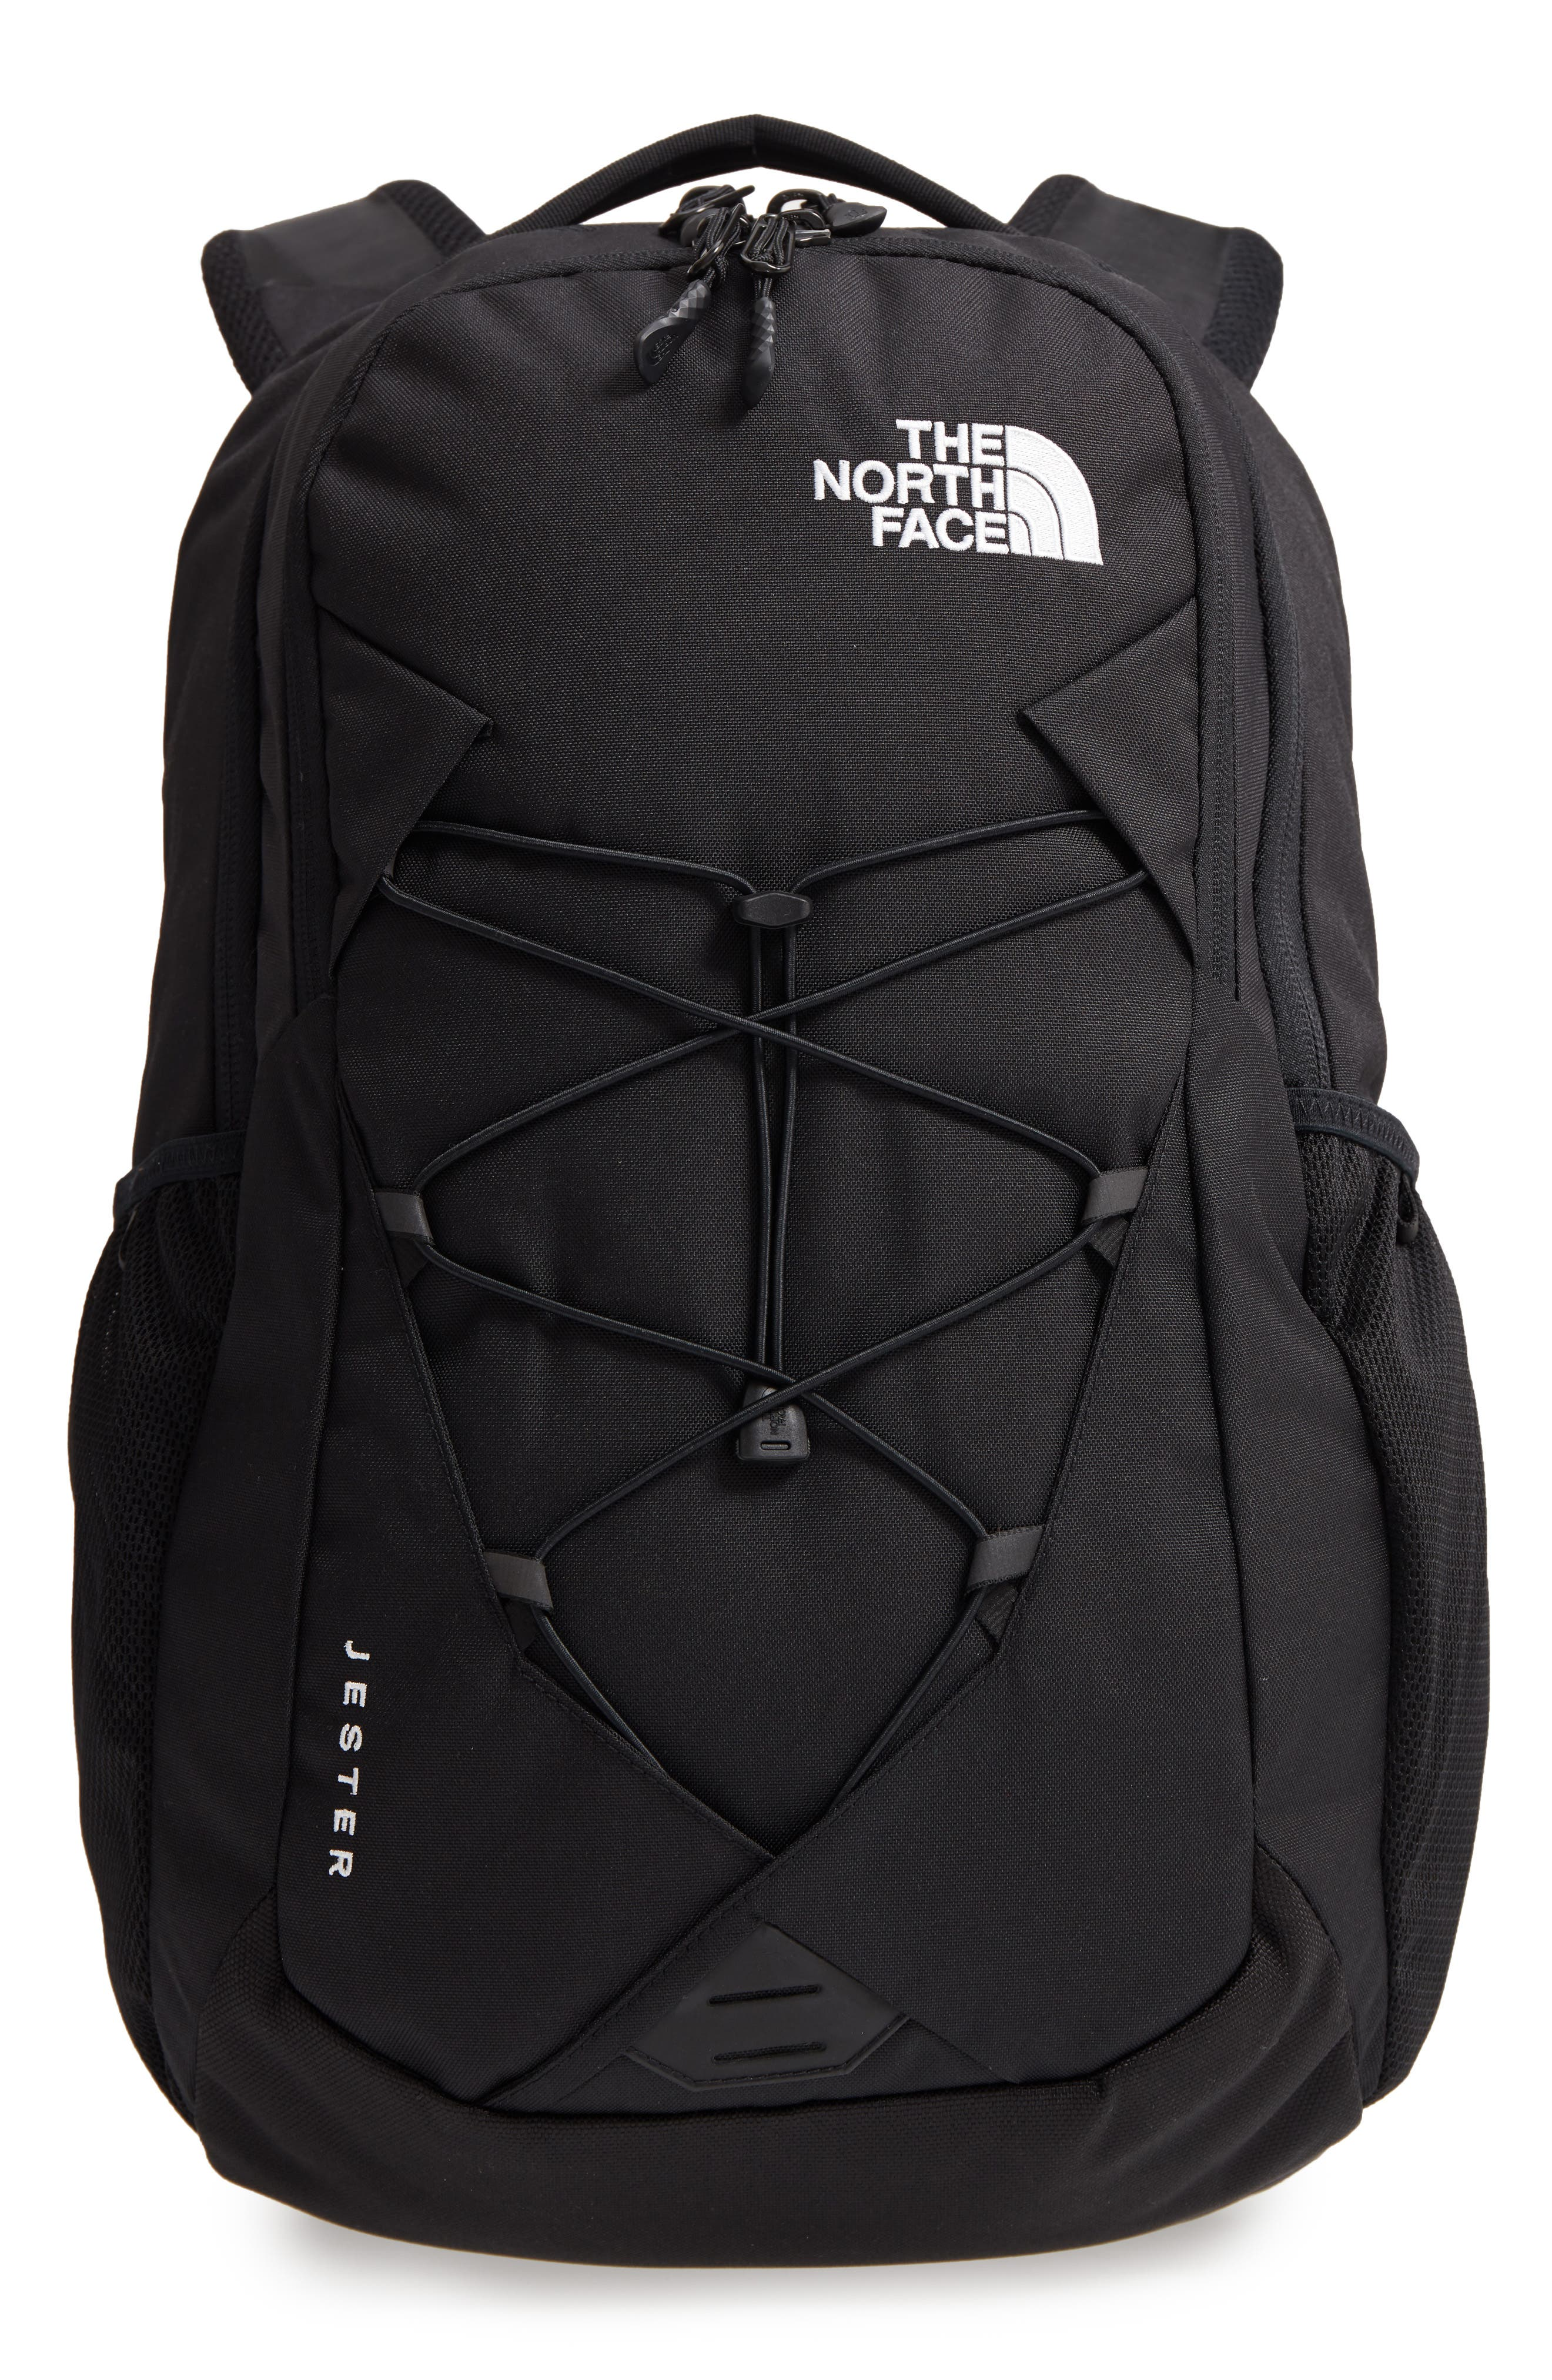 The North Face Women s Bags c87e527315637